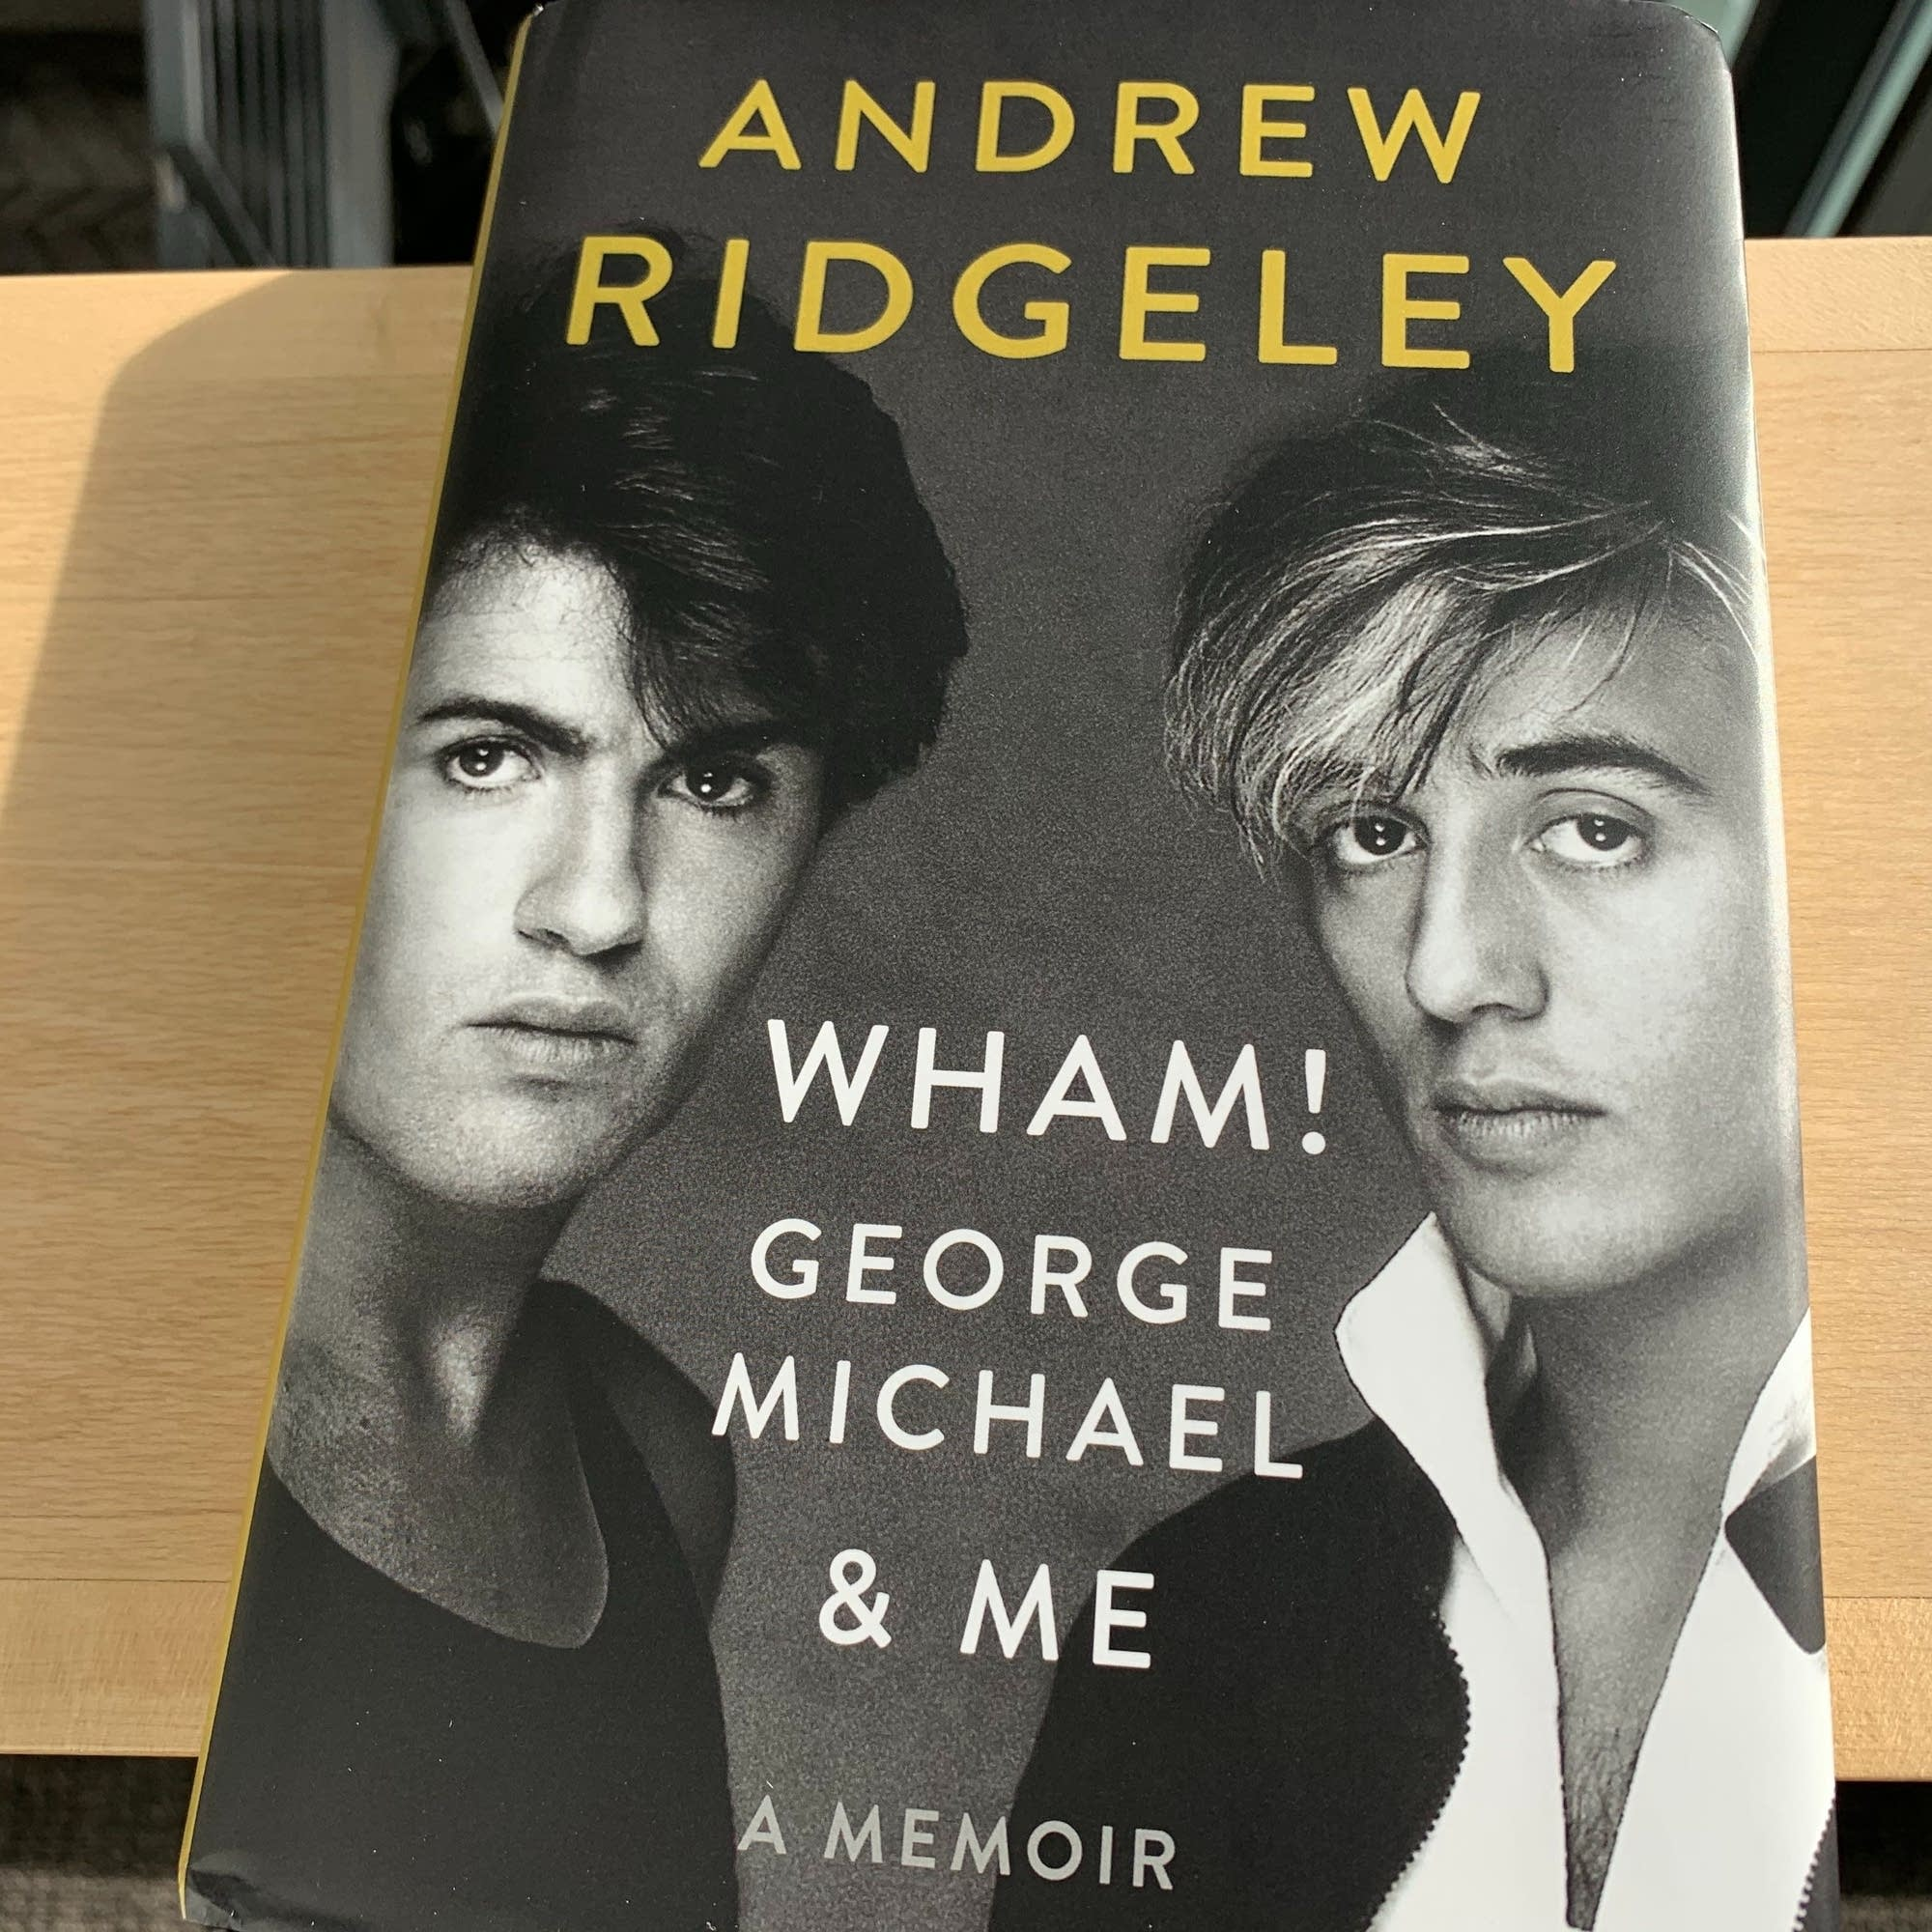 Andrew Ridgeley's book 'Wham!, George Michael & Me.'